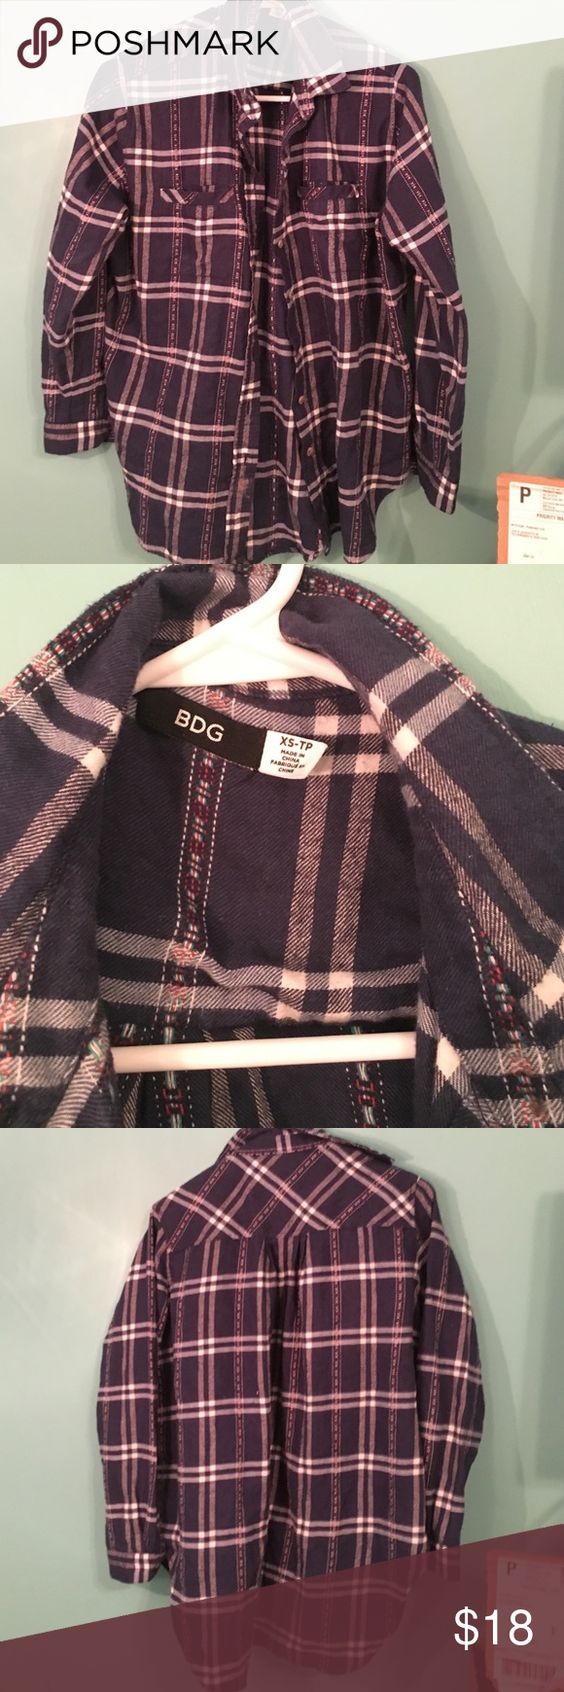 Urban outfitters oversized flannel BDG brand form UO, very oversized, button up Urban Outfitters Tops Button Down Shirts